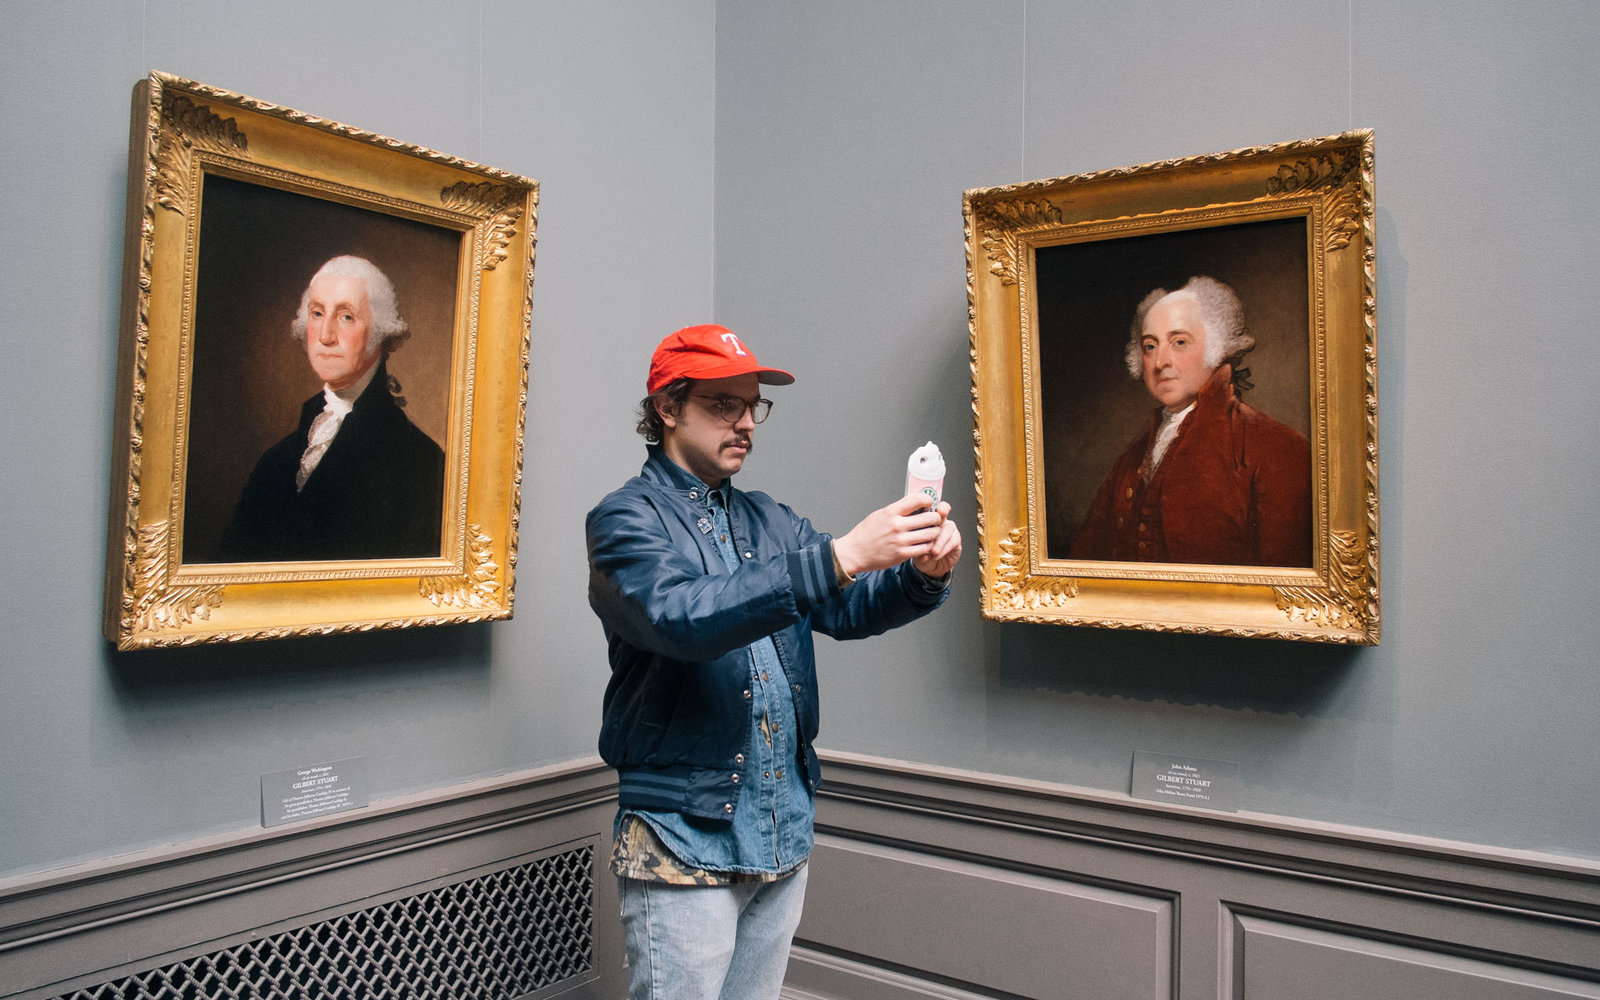 15 Museum Etiquette Errors And How To Avoid Making Them